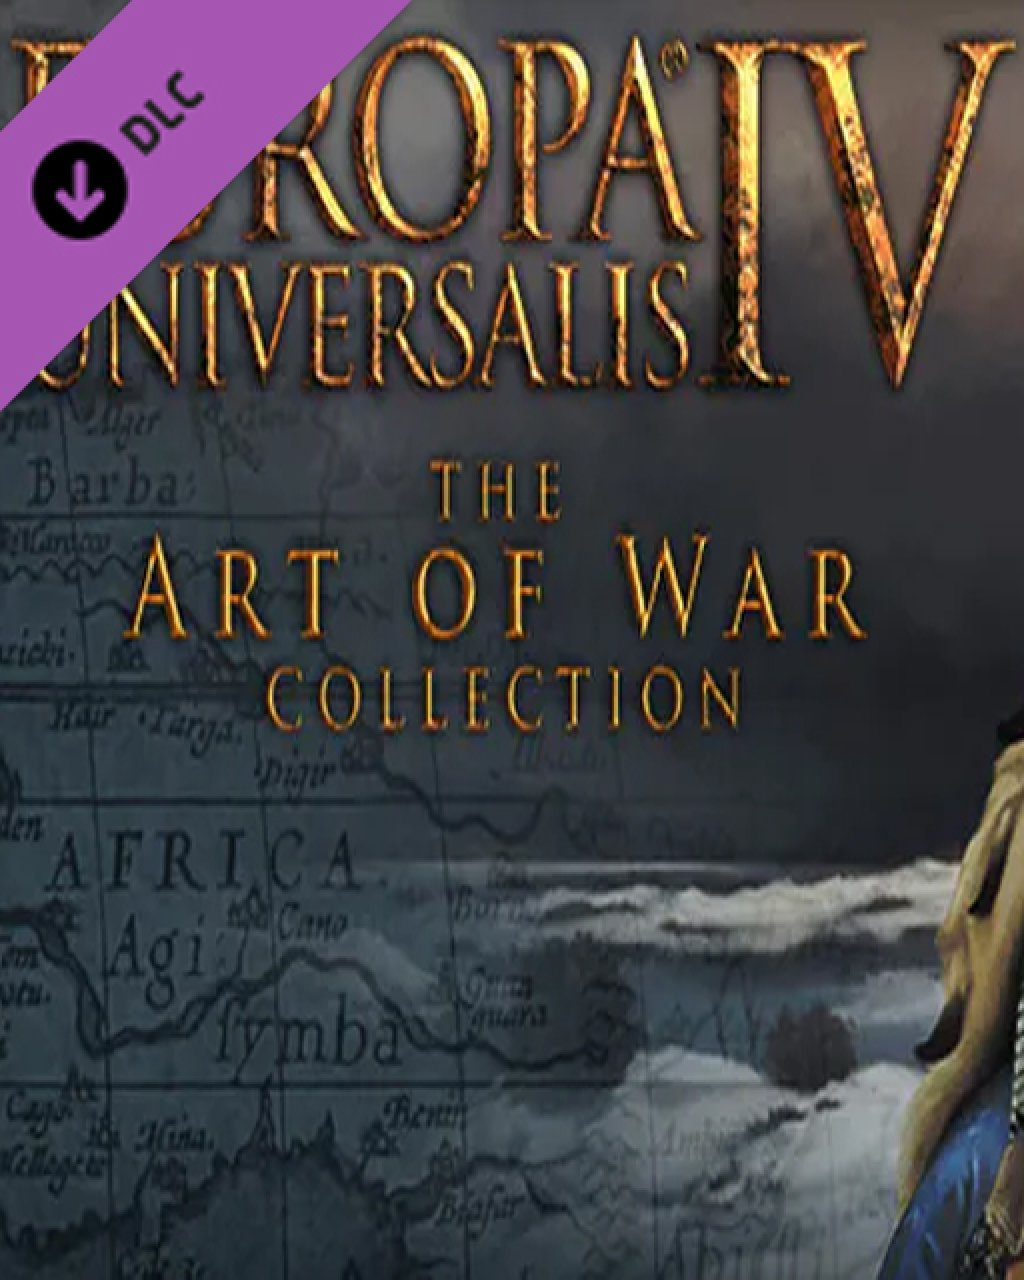 Europa Universalis IV The Art of War Collection